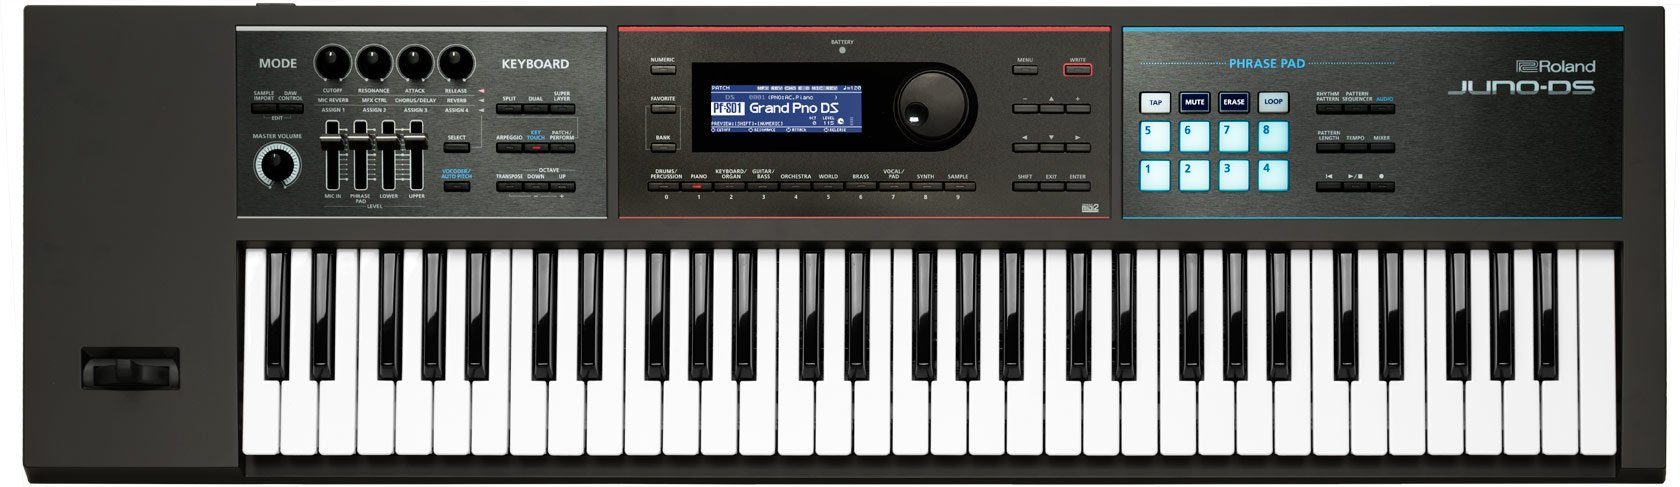 Roland Lightweight, 61-note Synth-action Keyboard with Pro Sounds (JUNO-DS61) by Roland